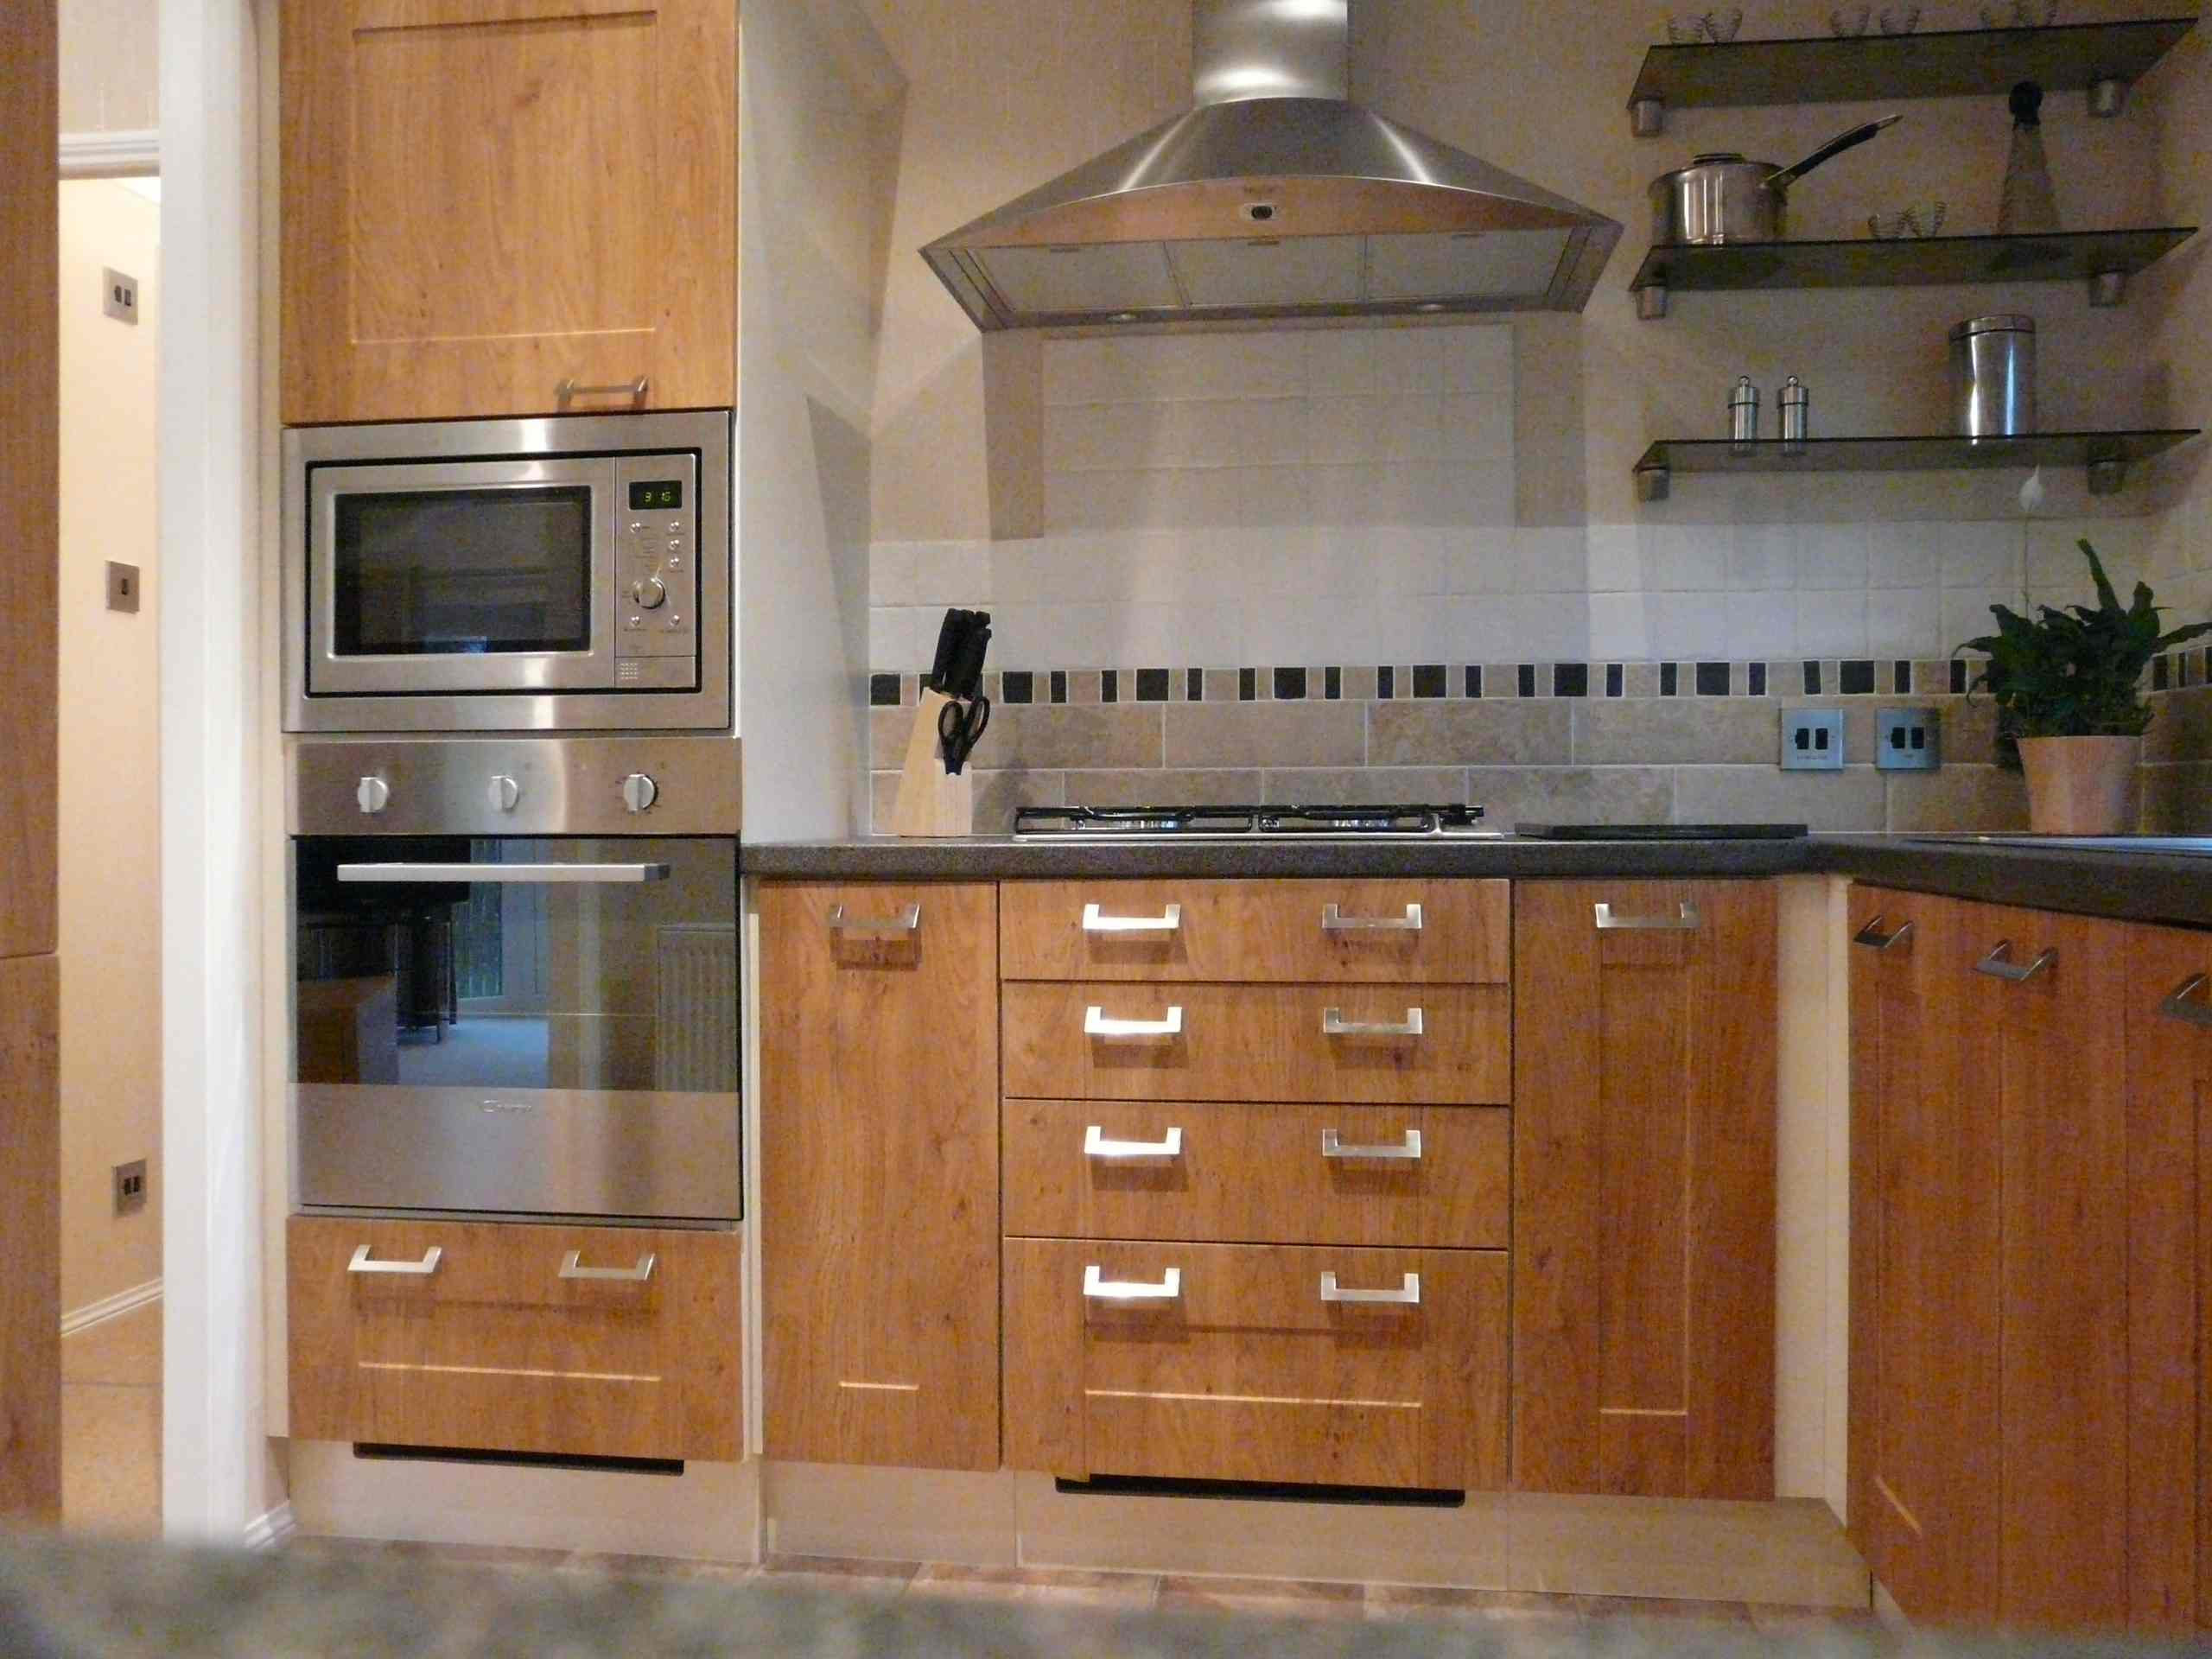 built in kitchen cabinets aid refrigerator parts safer and more efficient cooking with toaster